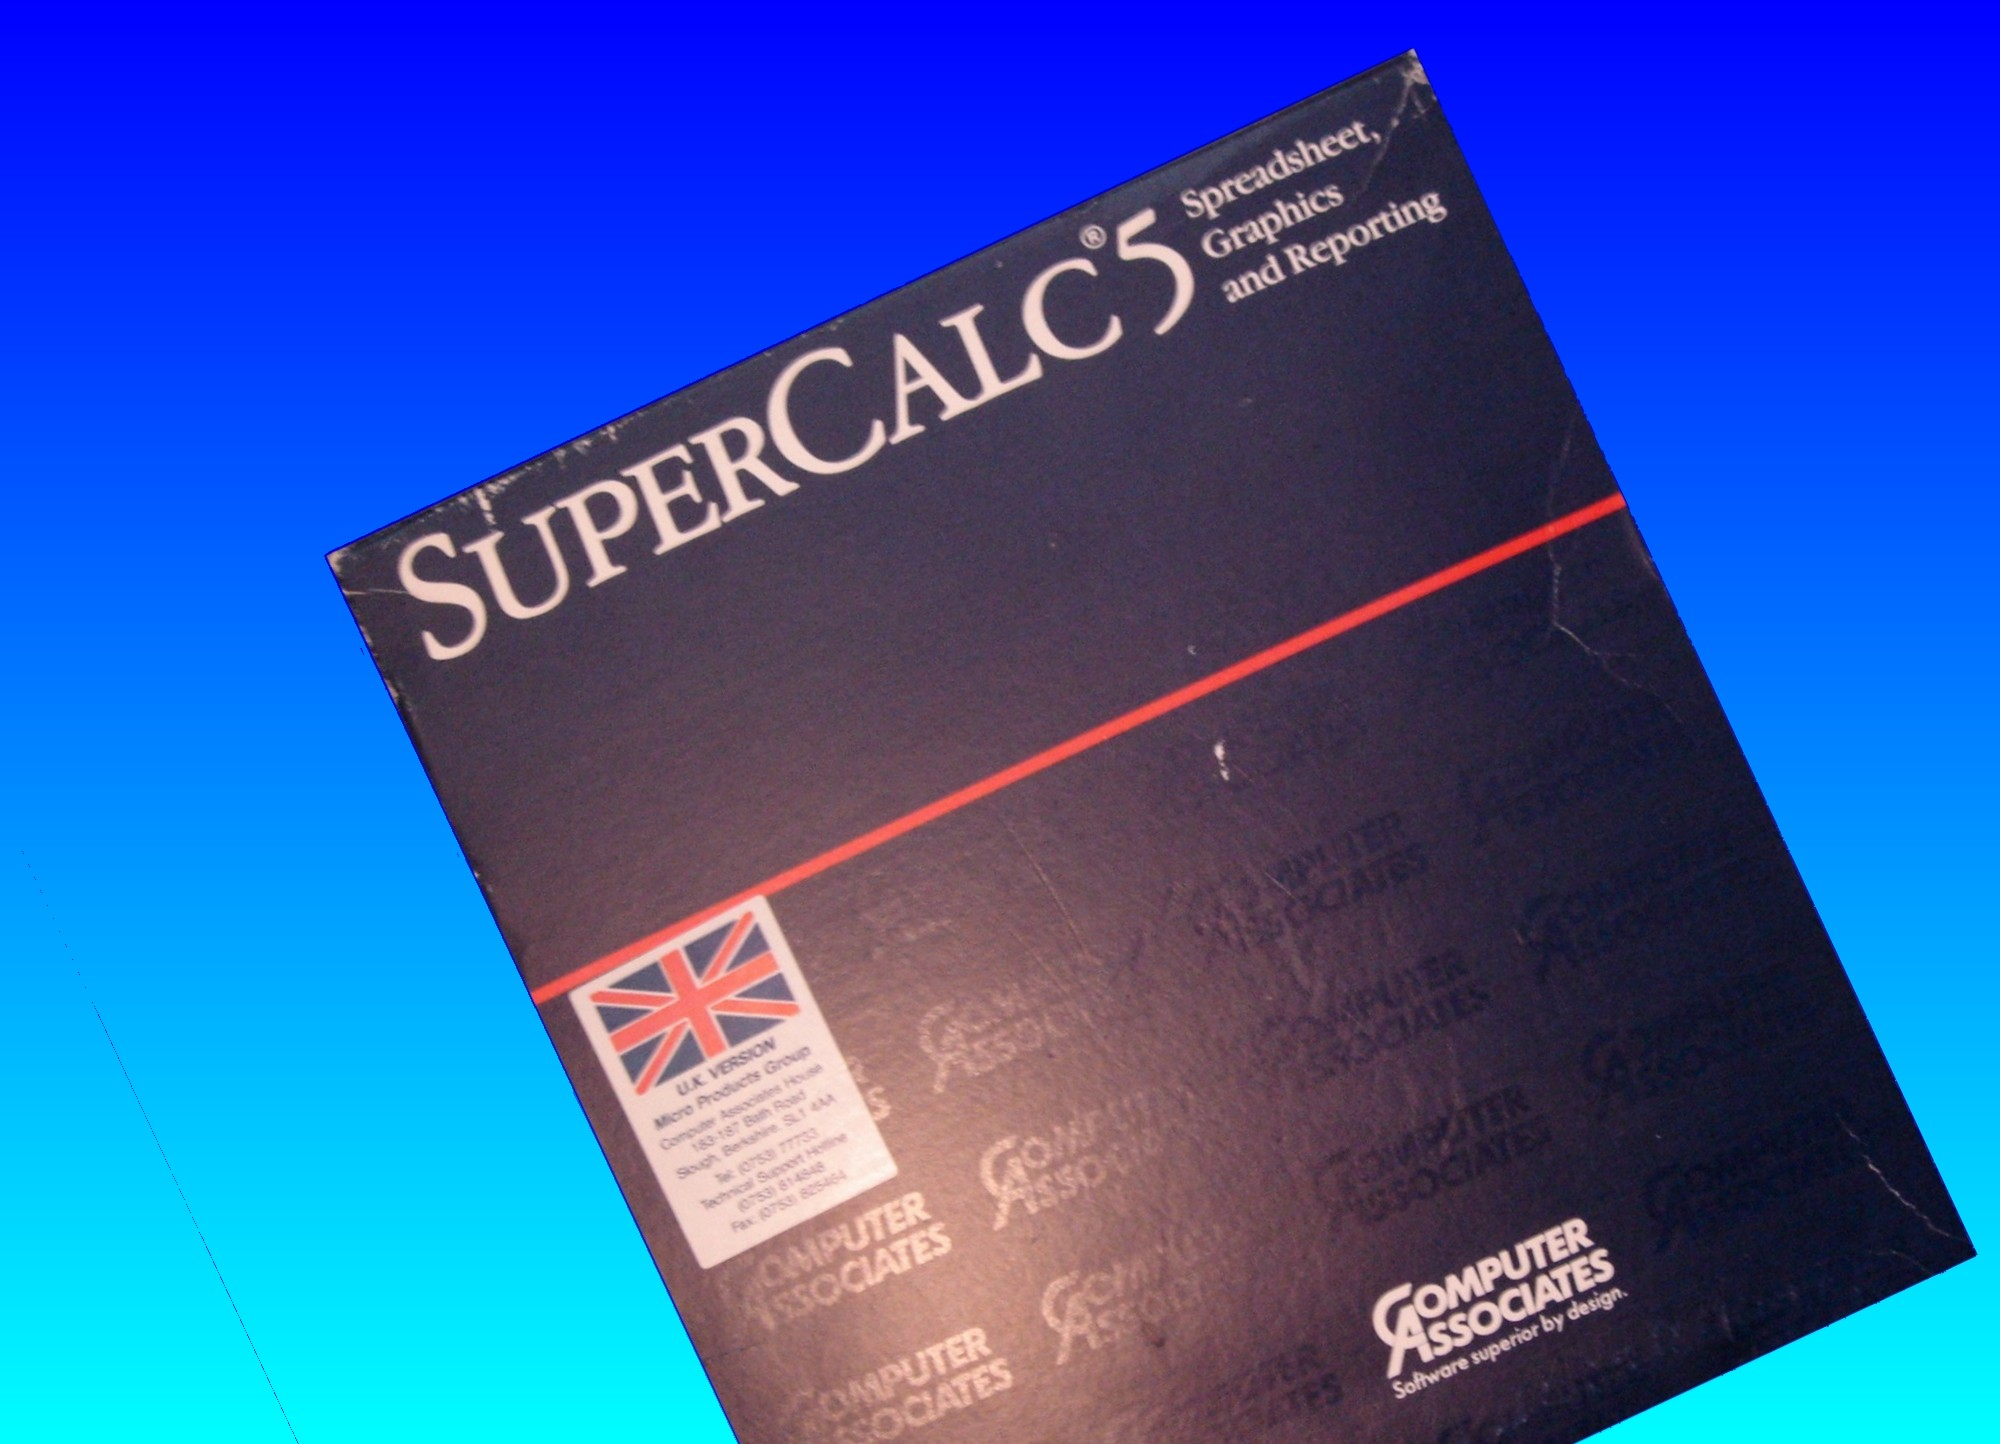 Supercalc files being converted to Microsoft Excel.